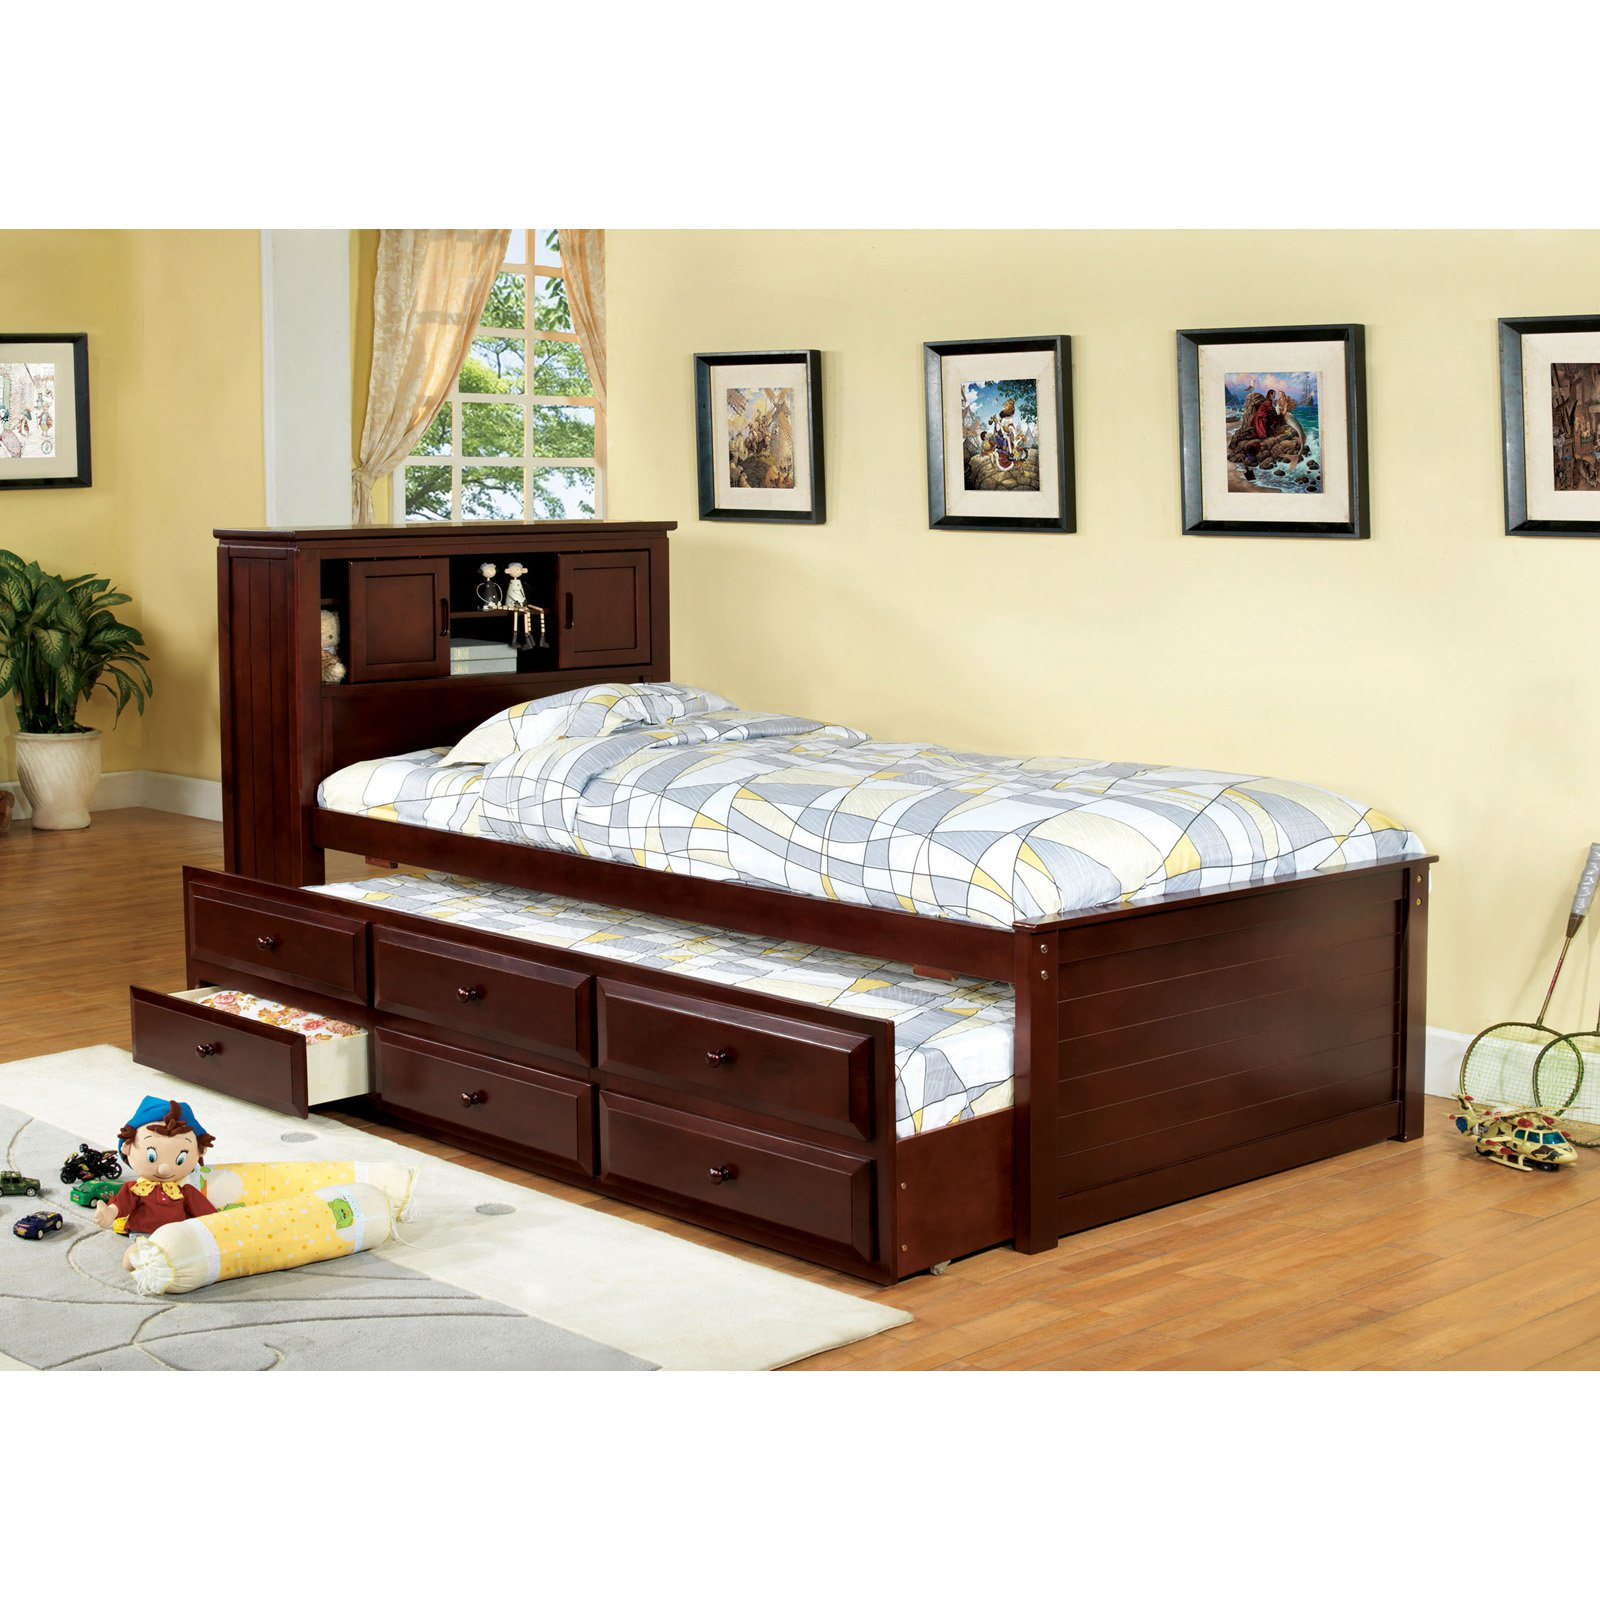 Awesome twin bed with drawers underneath homesfeed for Twin bed frame